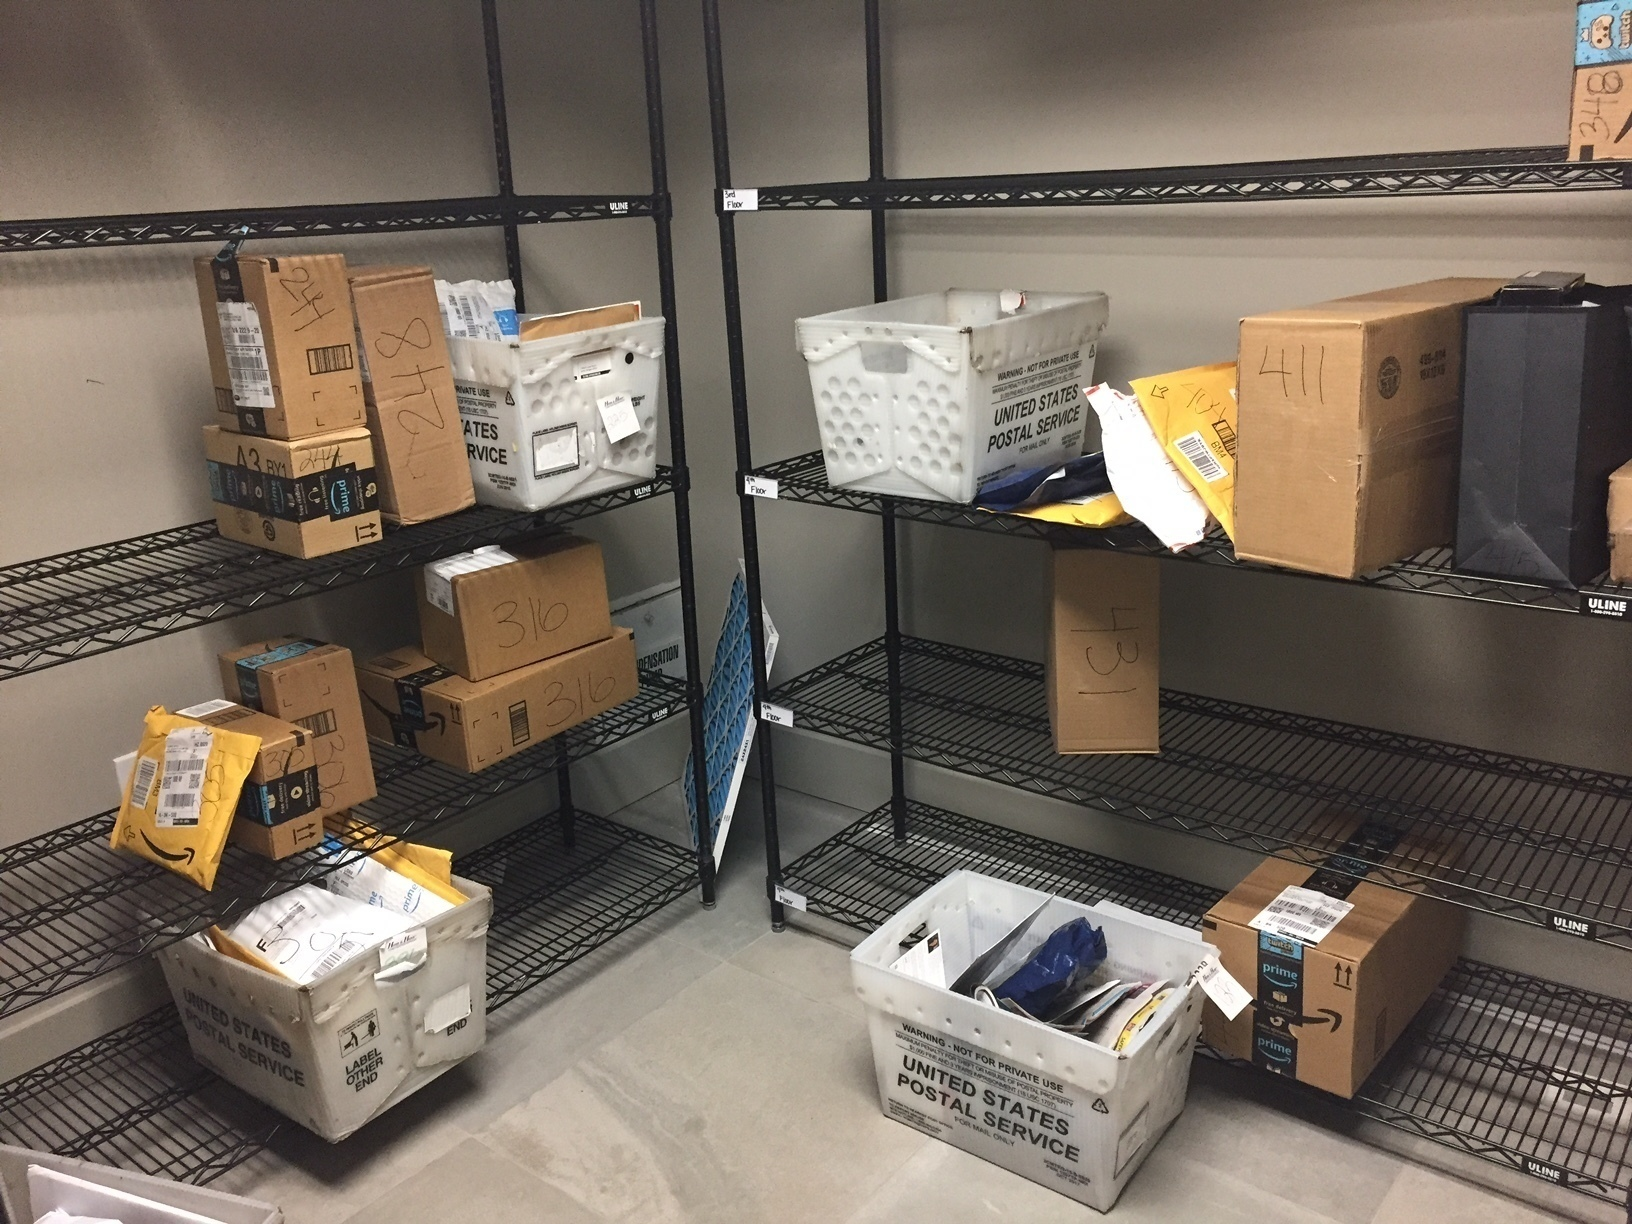 packages from Internet retailers